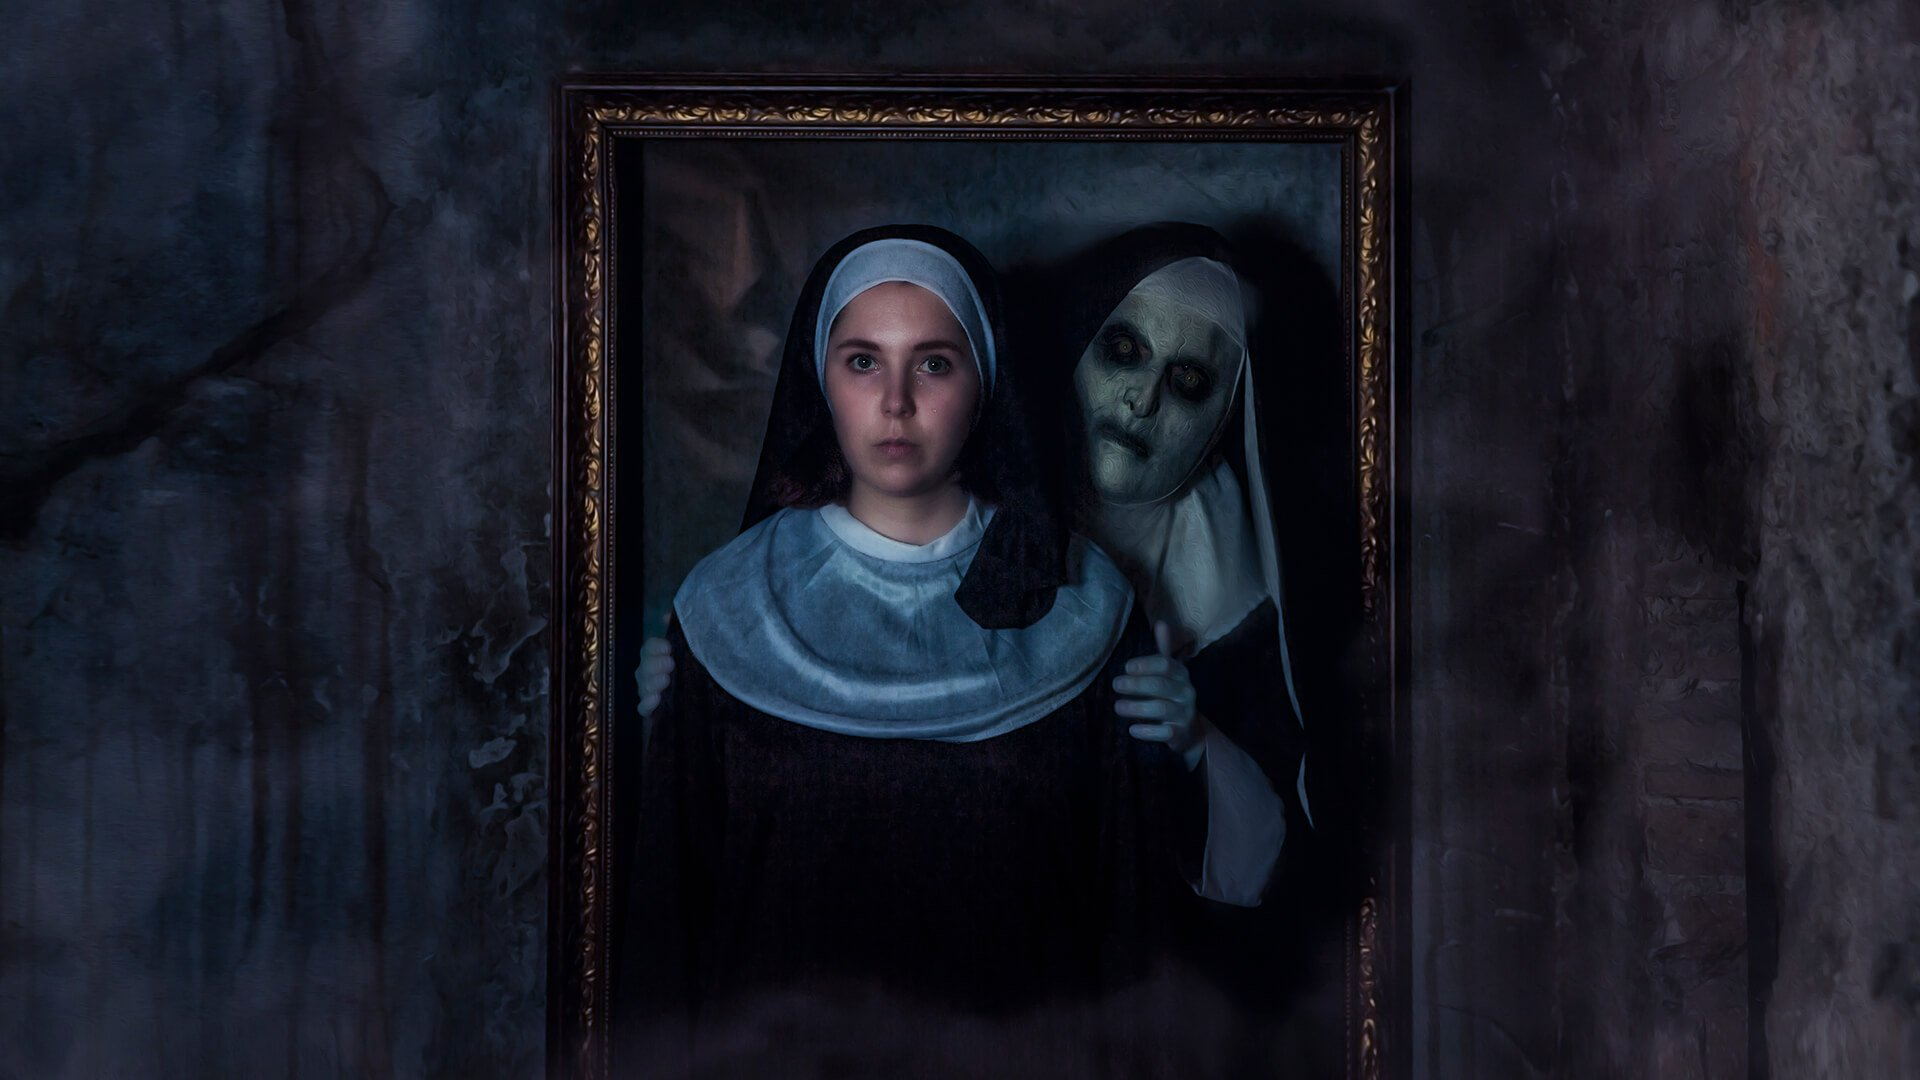 The Nun Nowayout Escape Room Premium Level Experience